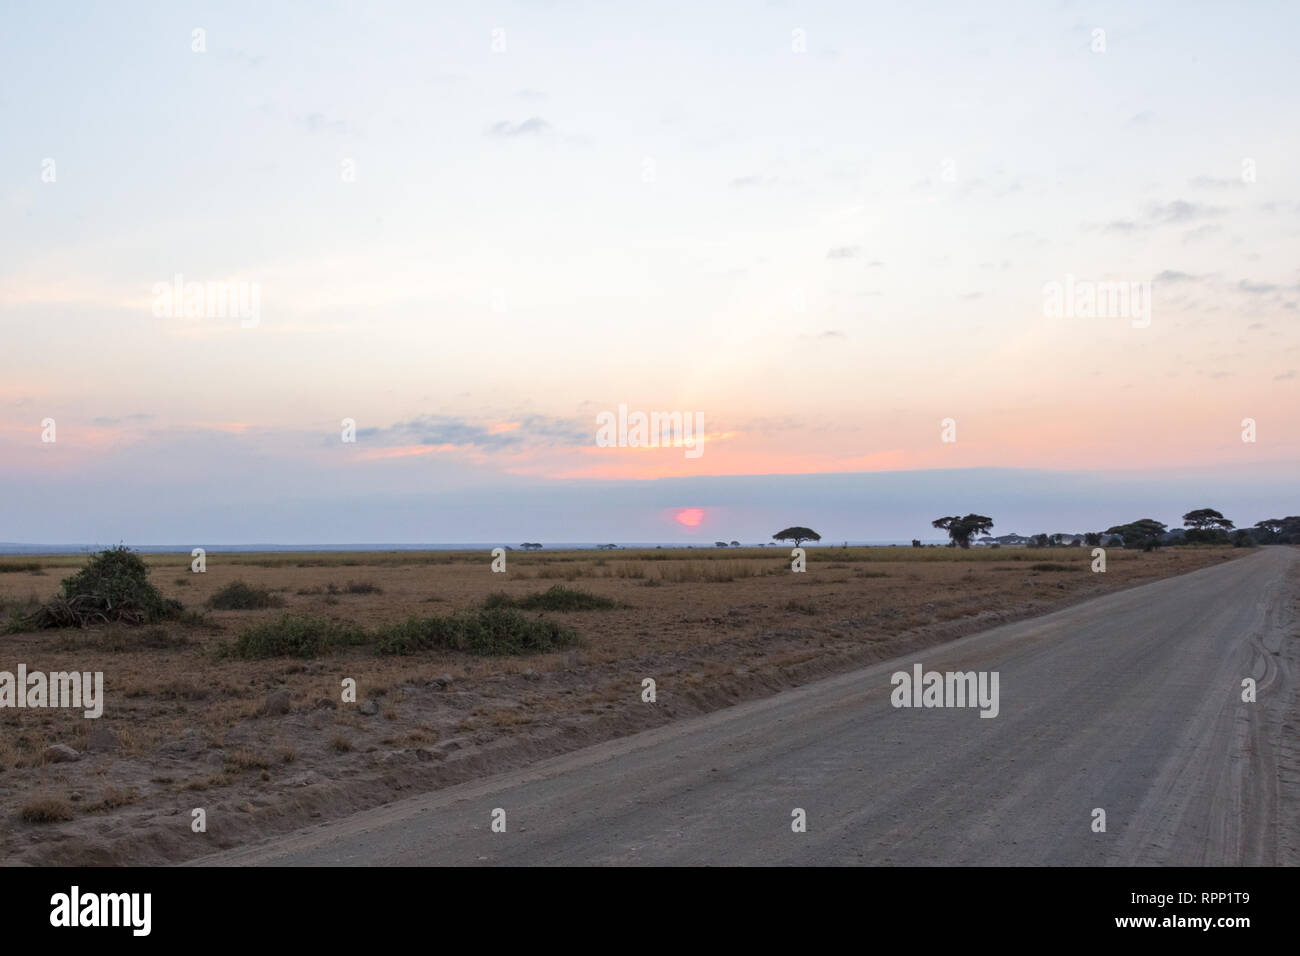 The road in the evening savannah. Kenya, Africa - Stock Image